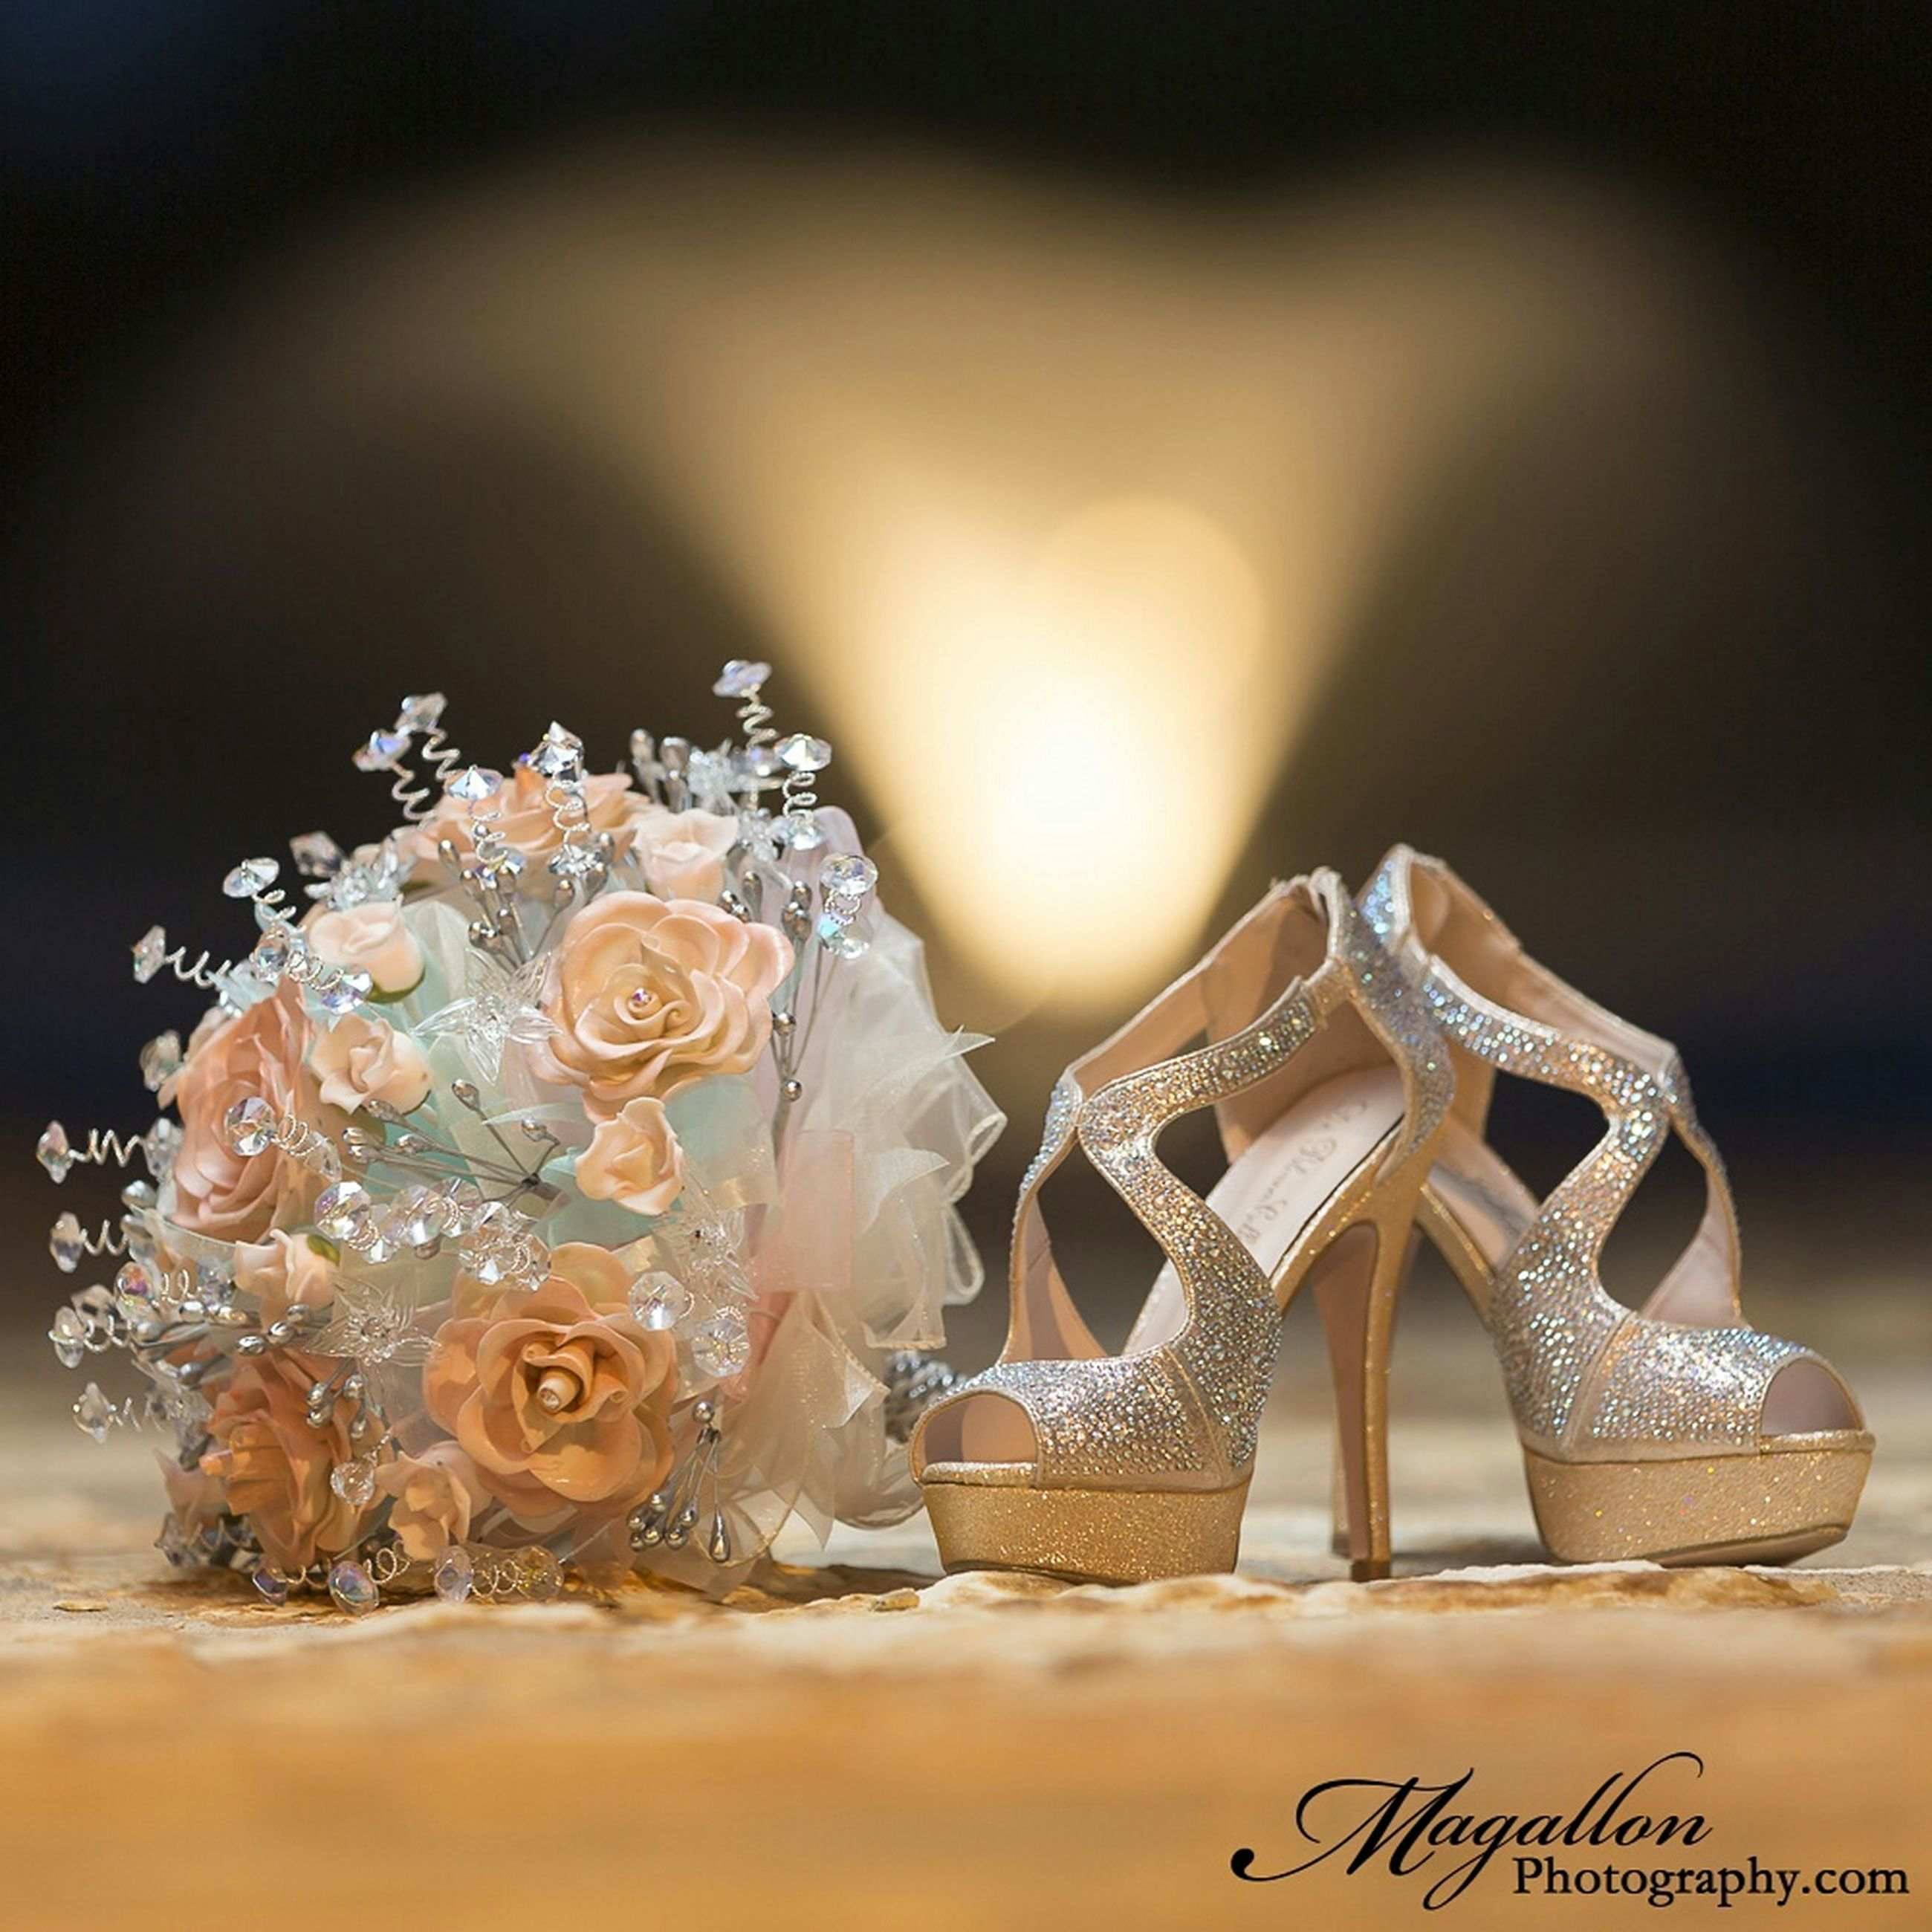 indoors, close-up, still life, art and craft, creativity, decoration, art, focus on foreground, table, ornate, selective focus, no people, man made object, design, gold colored, figurine, human representation, single object, animal representation, jewelry